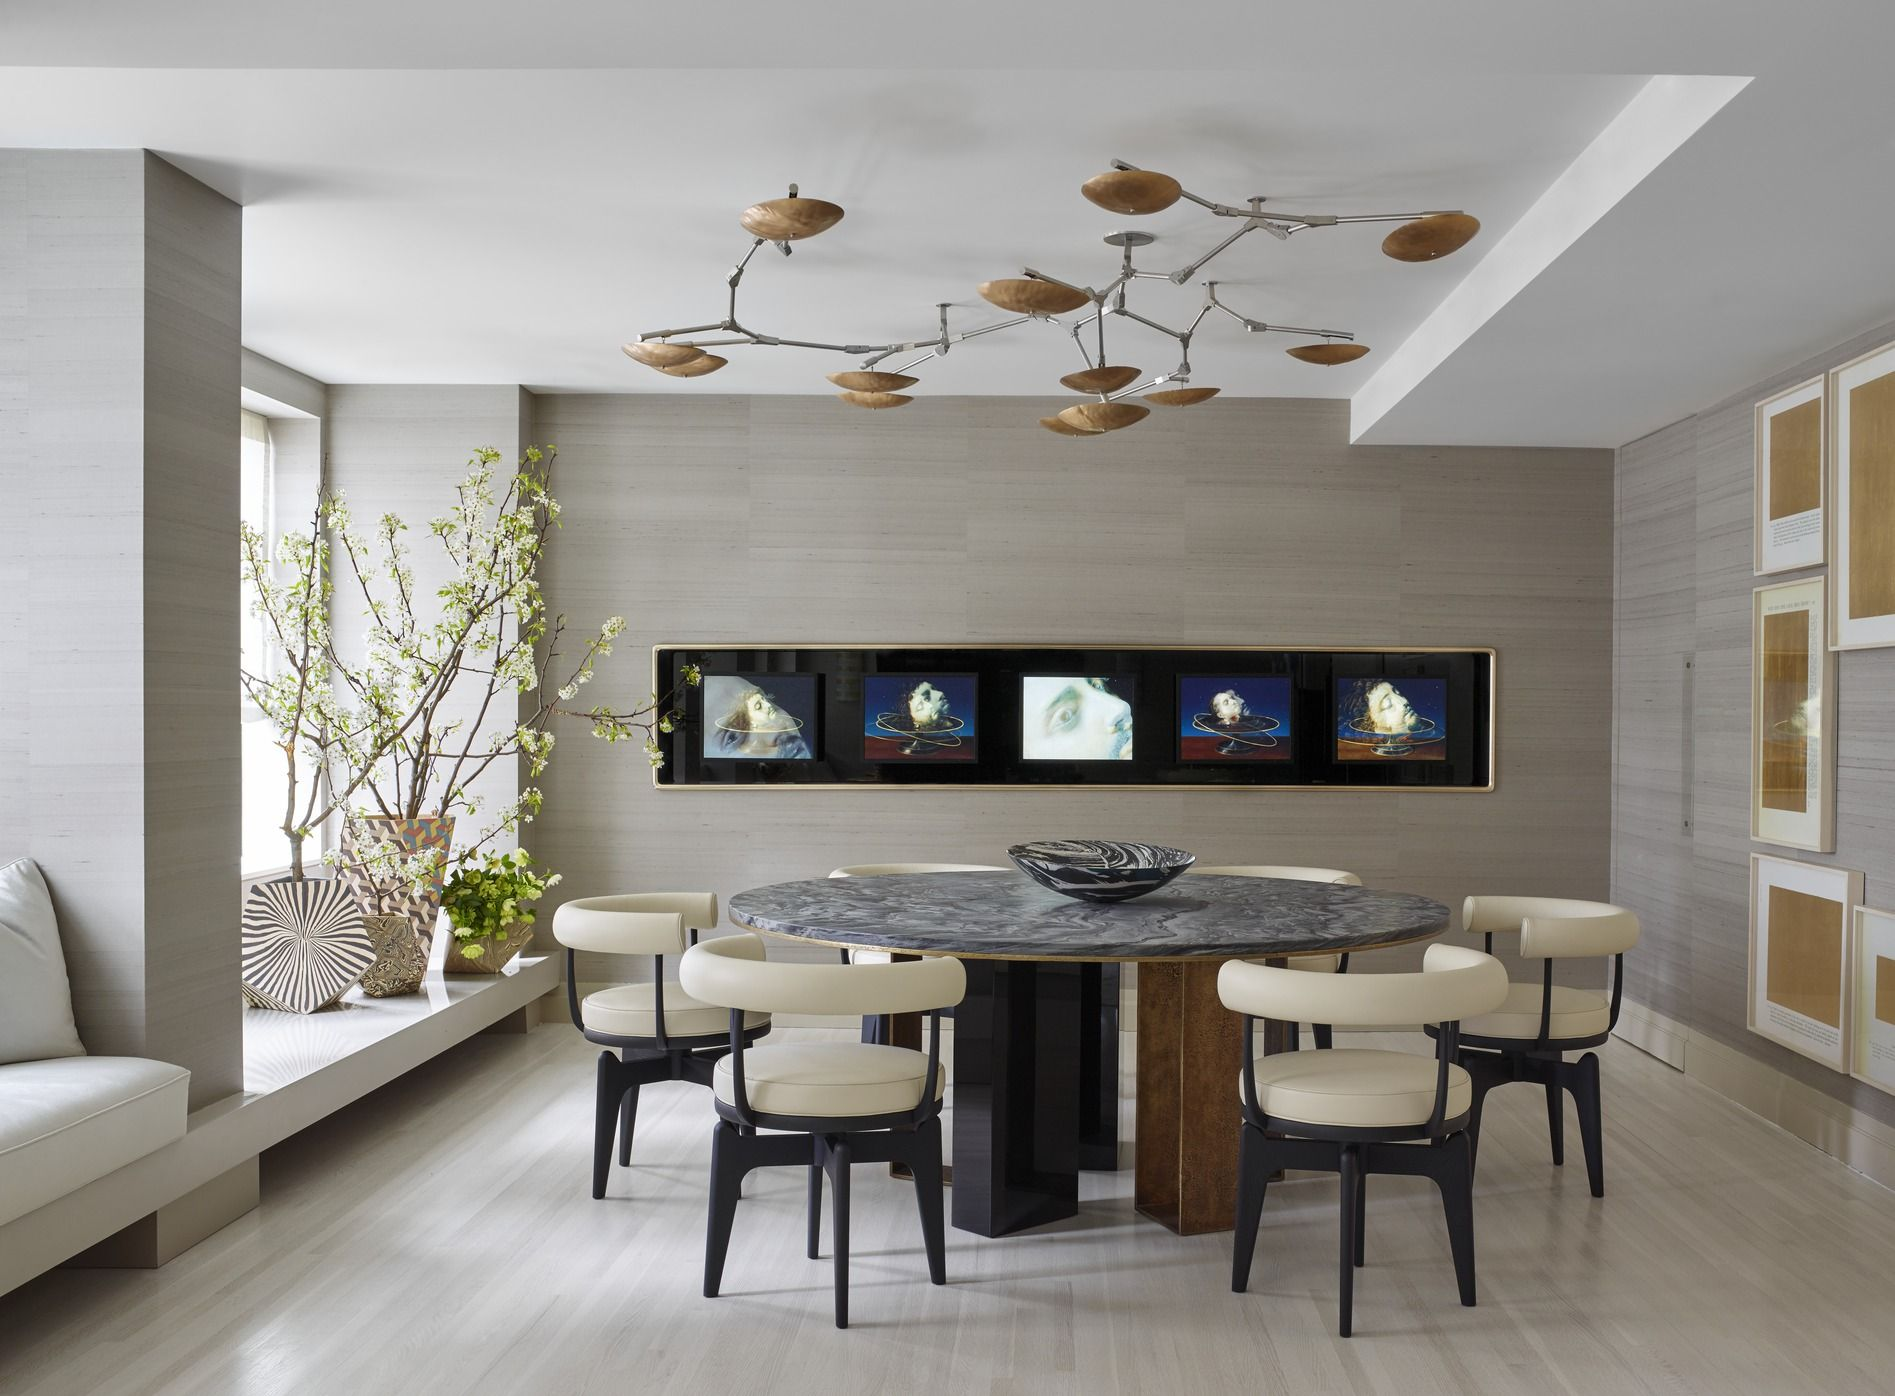 Esszimmer stil ideen  dining rooms with style to spare